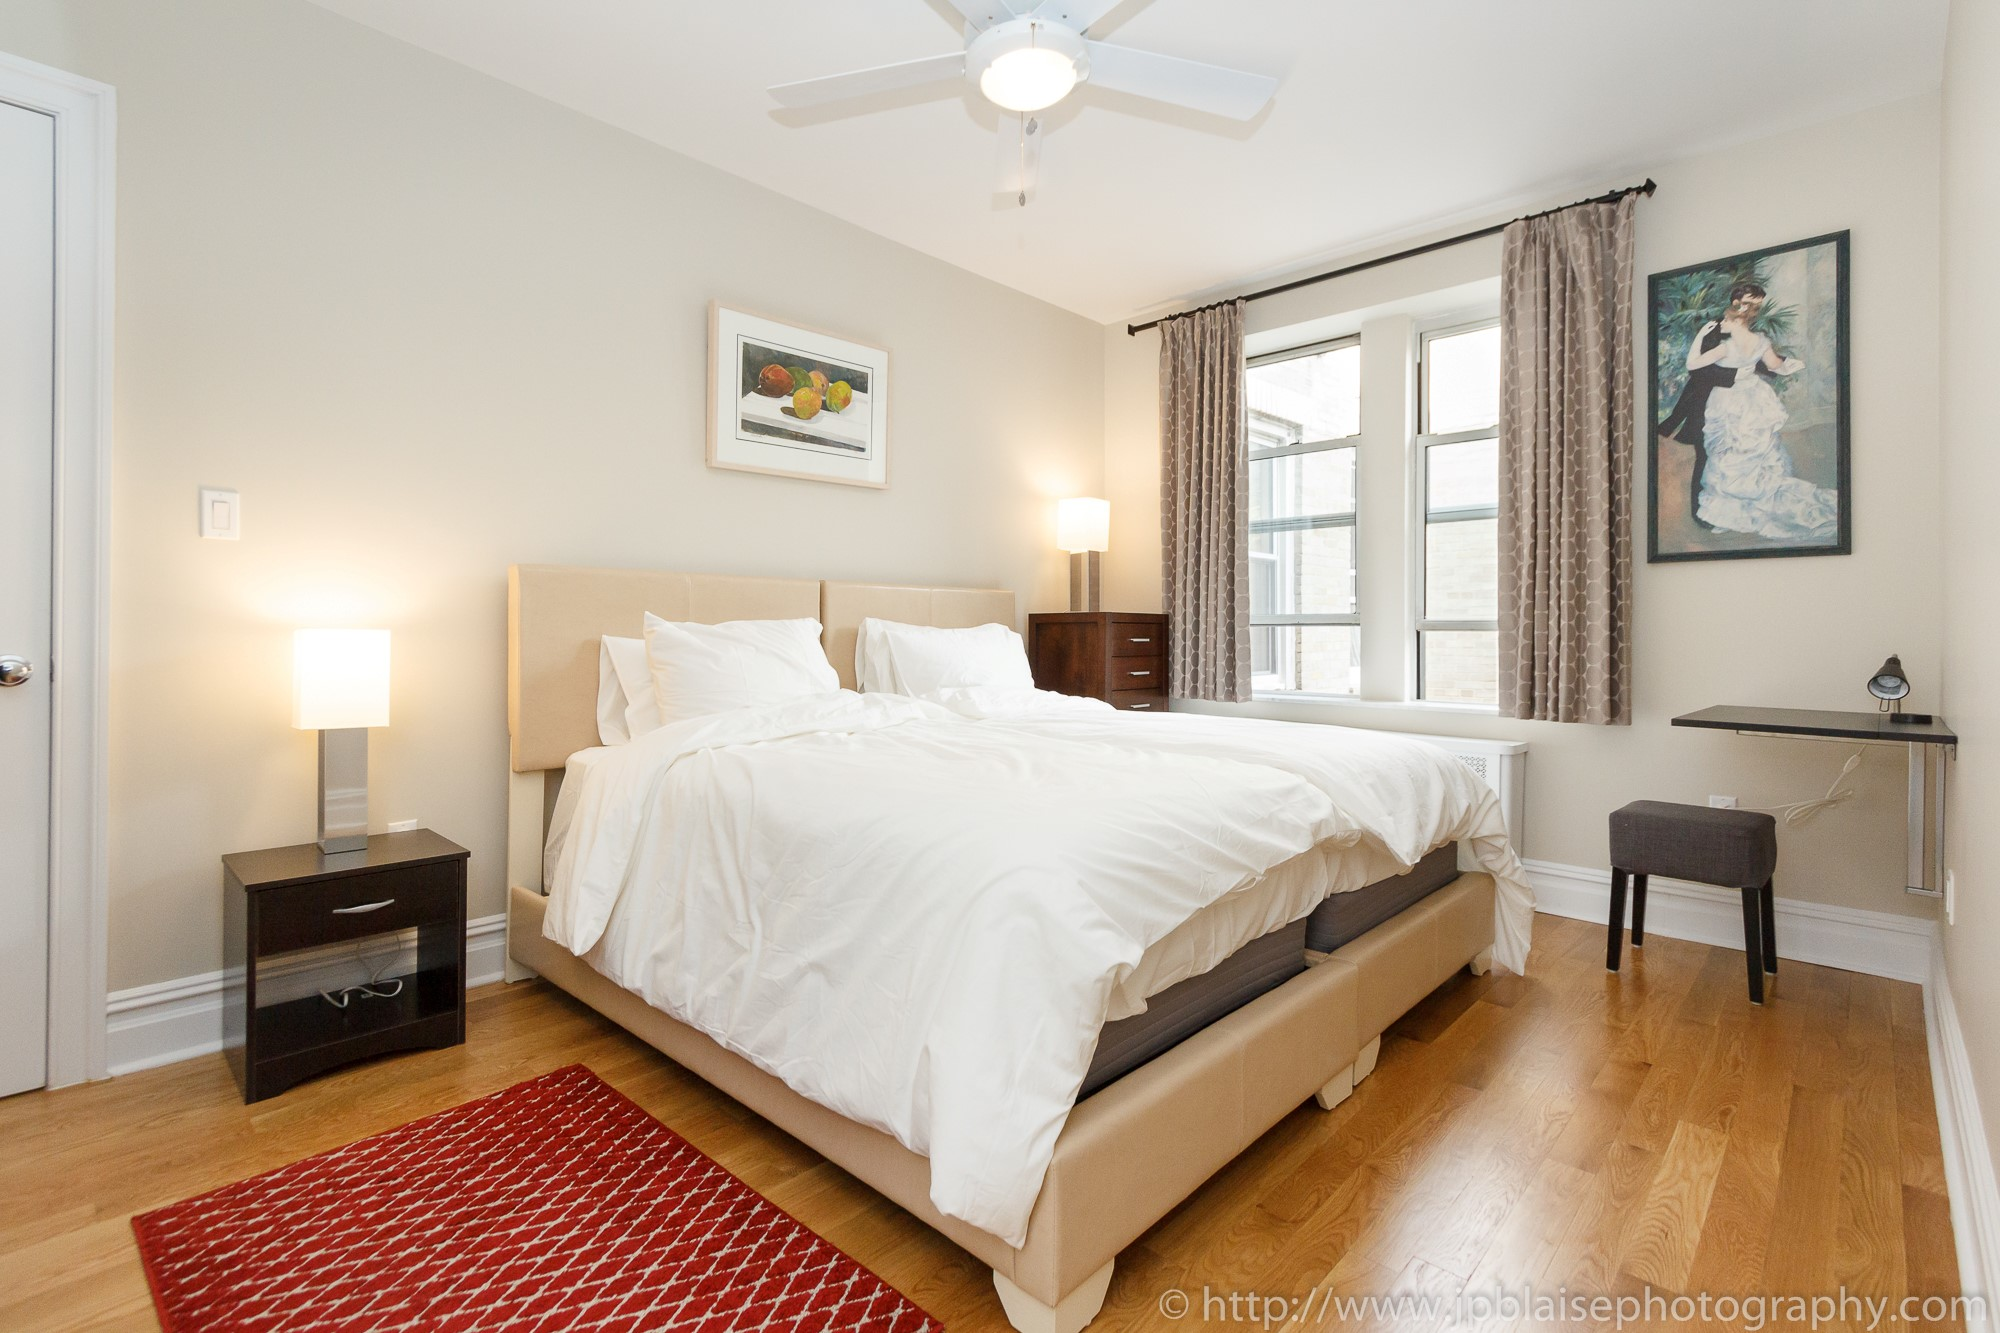 nyc interior photographer work of the day recently